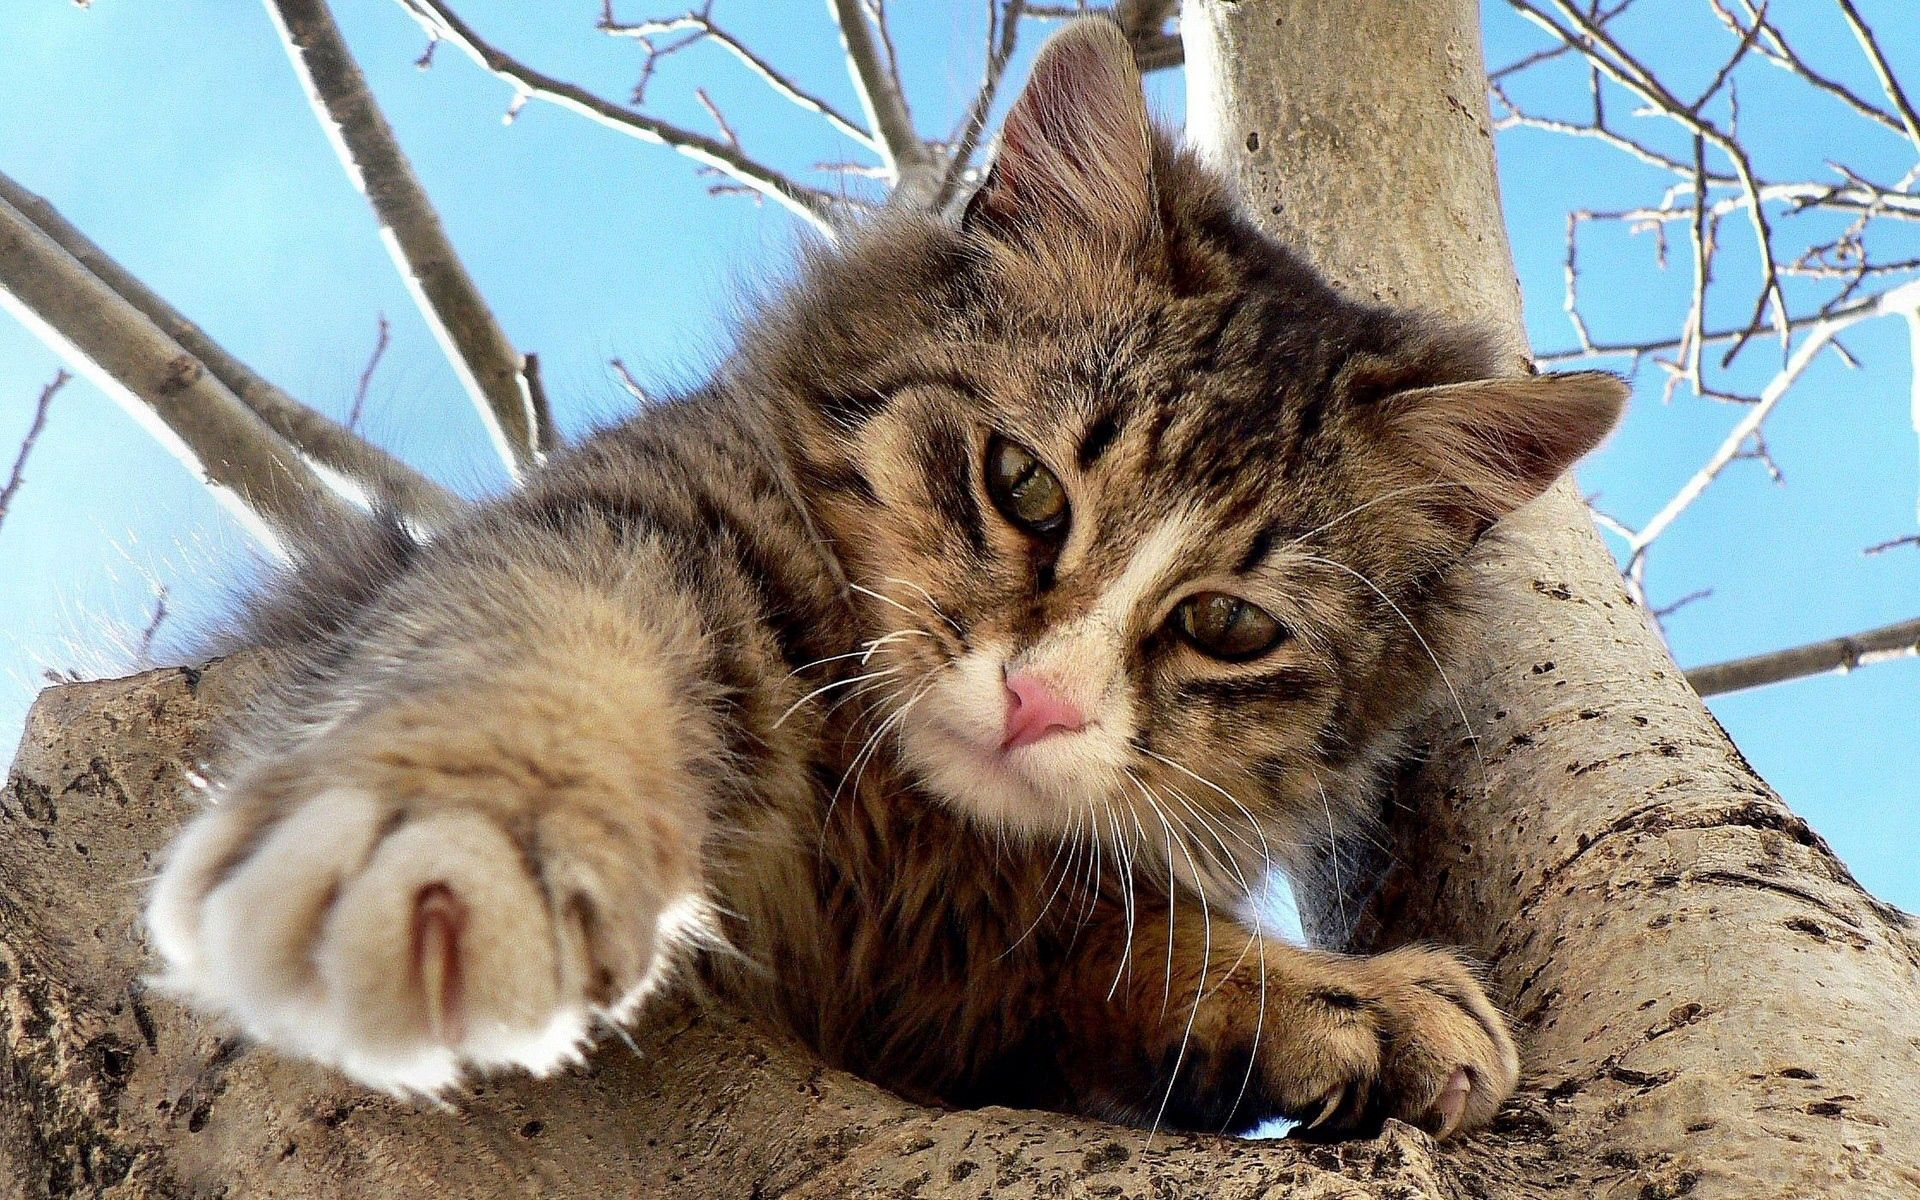 144823 download wallpaper Animals, Cat, Wood, Tree, Crawl, Climb, Playful screensavers and pictures for free